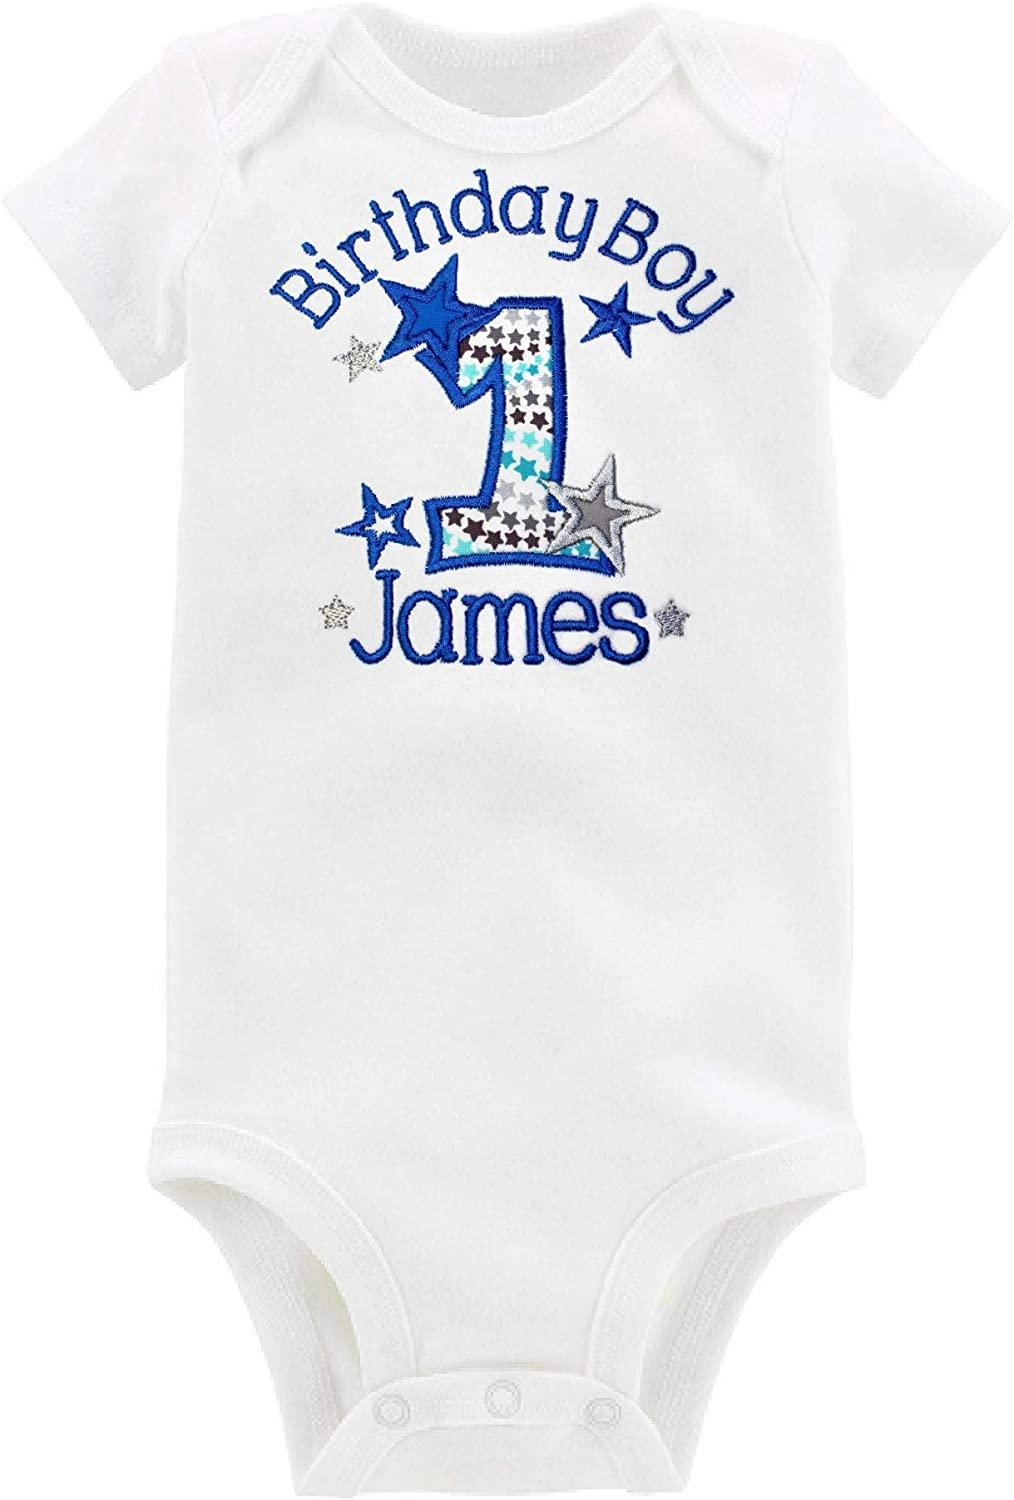 Embroidered First Birthday Year 1 Bodysuit for Baby Boys Personalized with Baby Custom Name